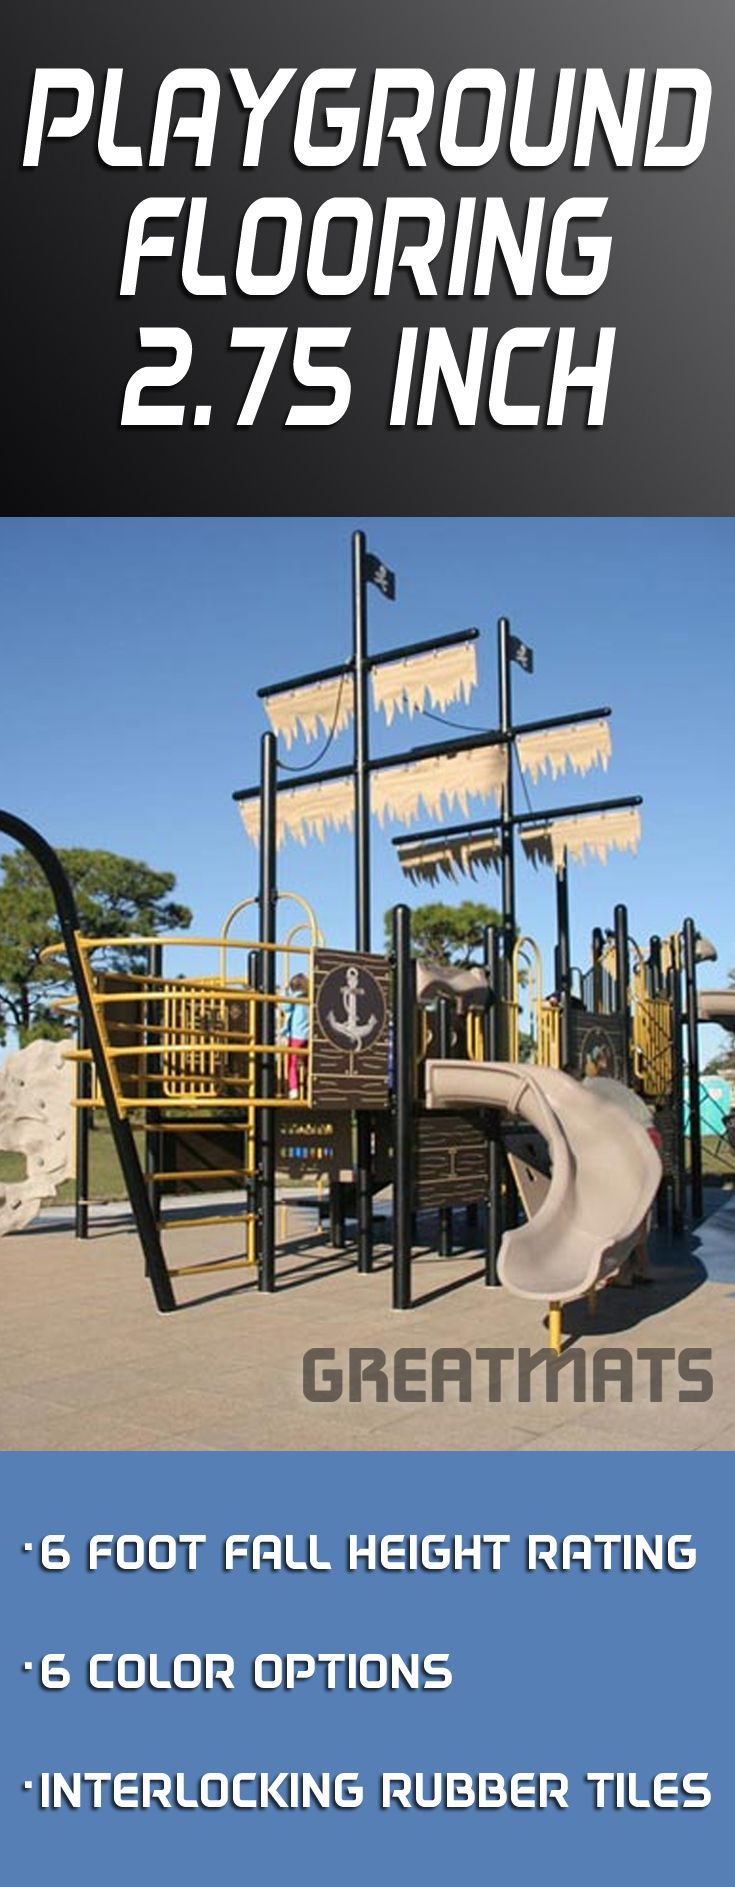 Best 25 playground flooring ideas on pinterest backyard great playground flooring option with a 6 foot critical fall height rating and multiple color options dailygadgetfo Images